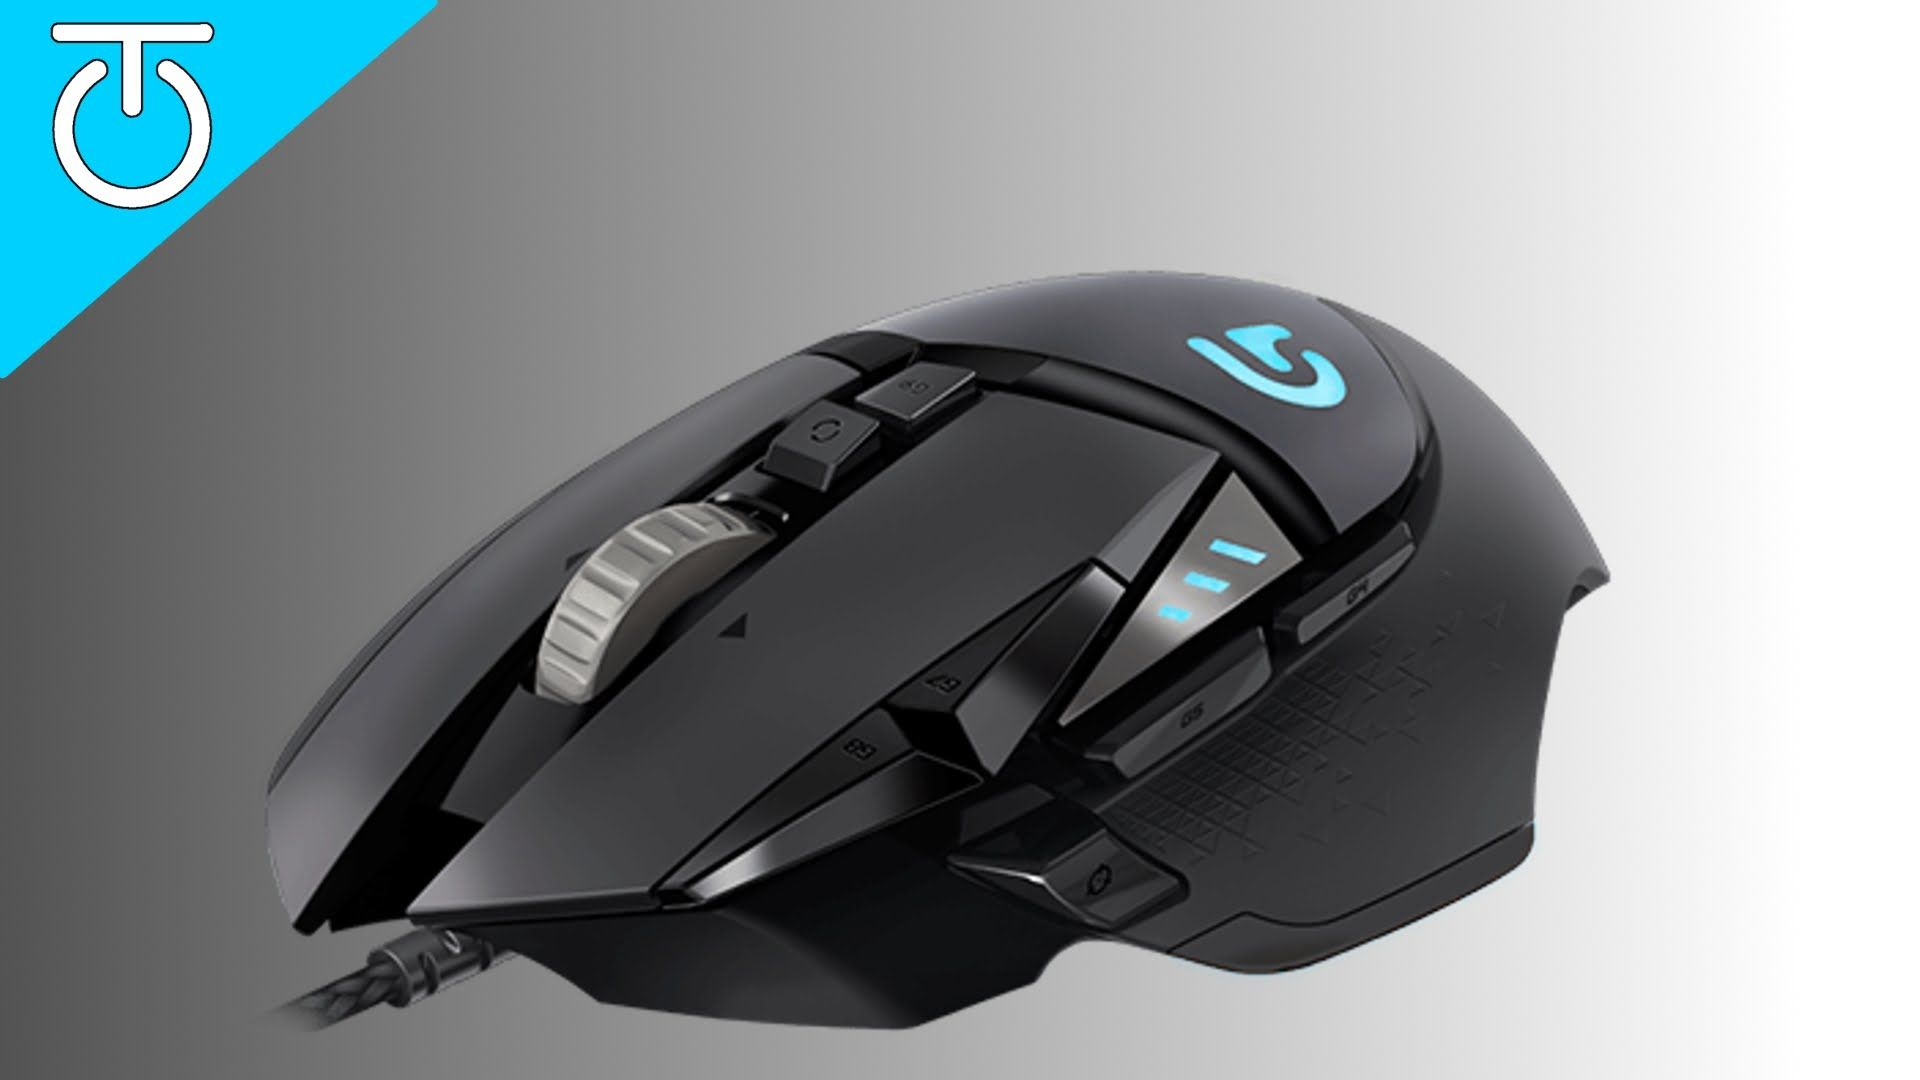 Logitech G502 Proteus Core Gaming Mouse | Gaming Videos by